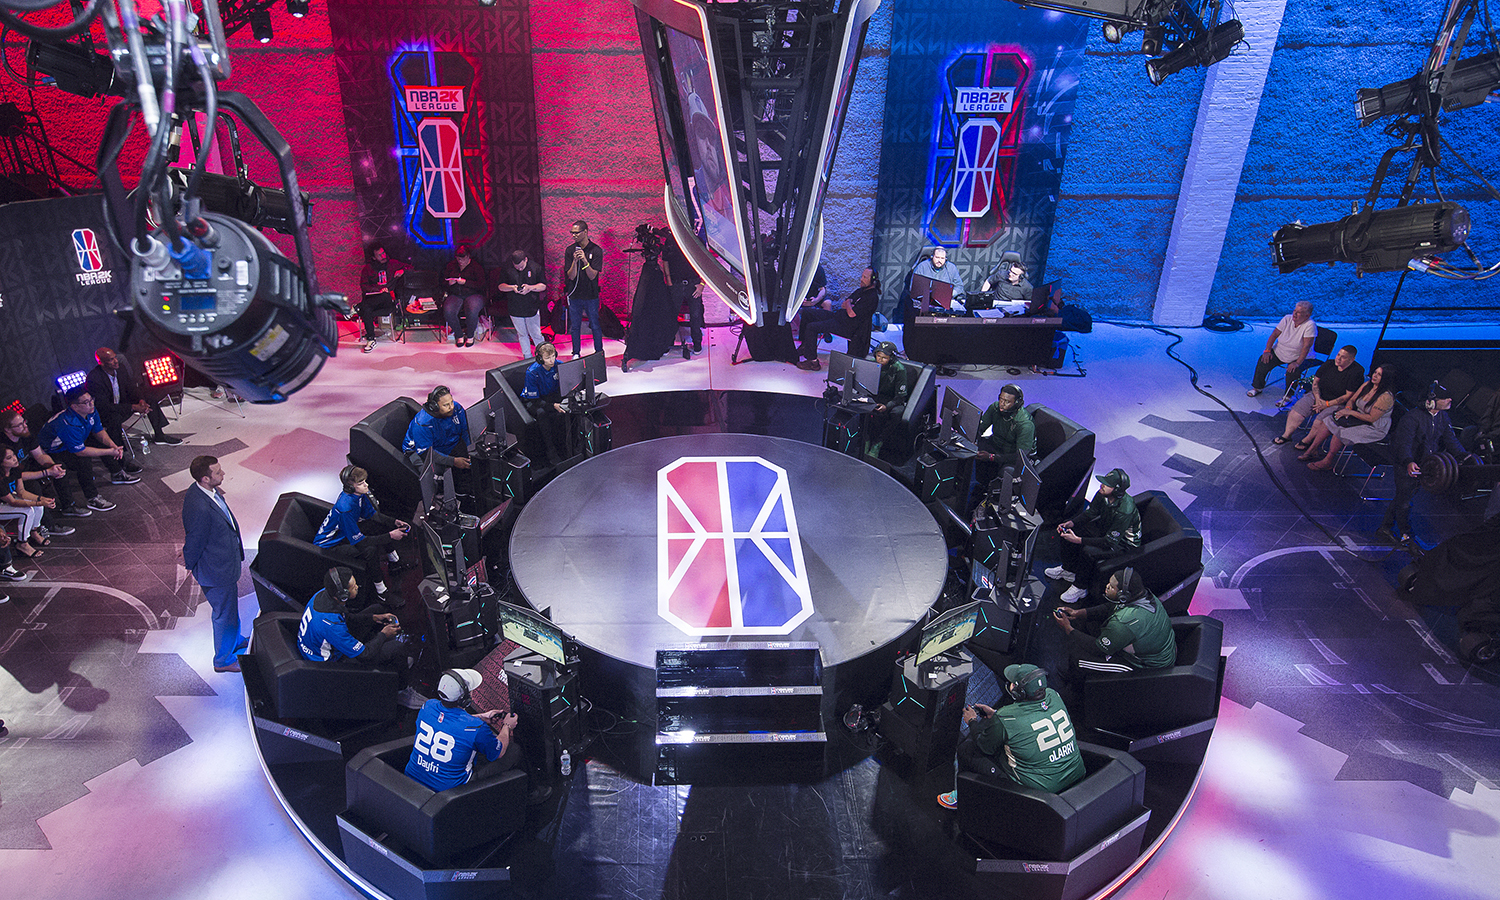 As NBA 2K League's First Season Closes Out, Studio and Production Workflows Continue To Evolve